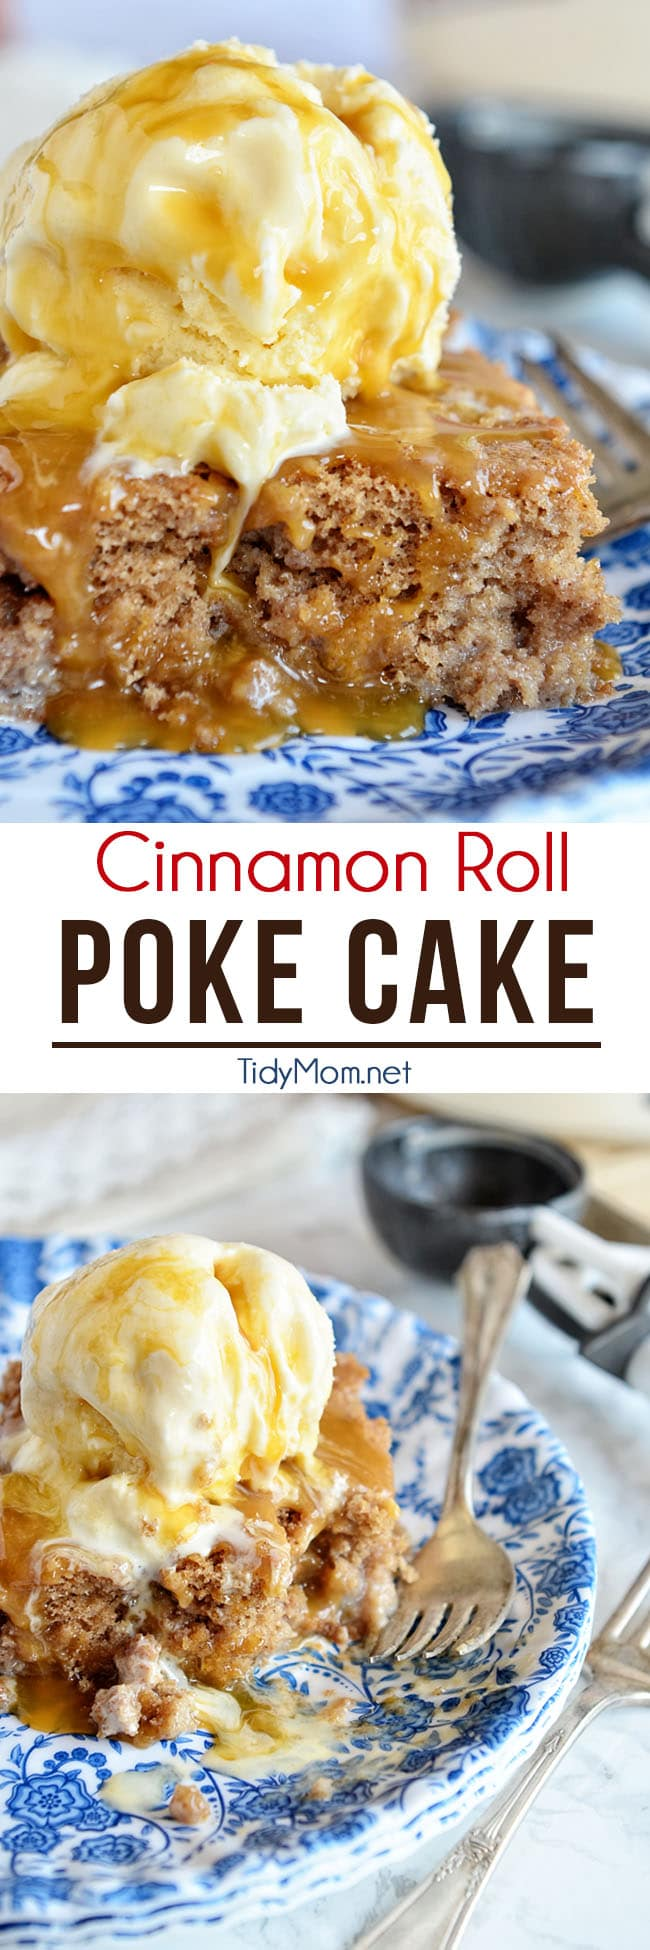 Cinnamon Roll Poke Cake tastes just like the gooey center of a cinnamon roll! Start with a spice cake mix and can of cream soda combined with sweetened condensed milk, top with vanilla ice cream and caramel sauce and you end up with the most delectable cake you've ever had! recipe + video at TidyMom.net #cinnamonroll #cake #pokecake #dessert